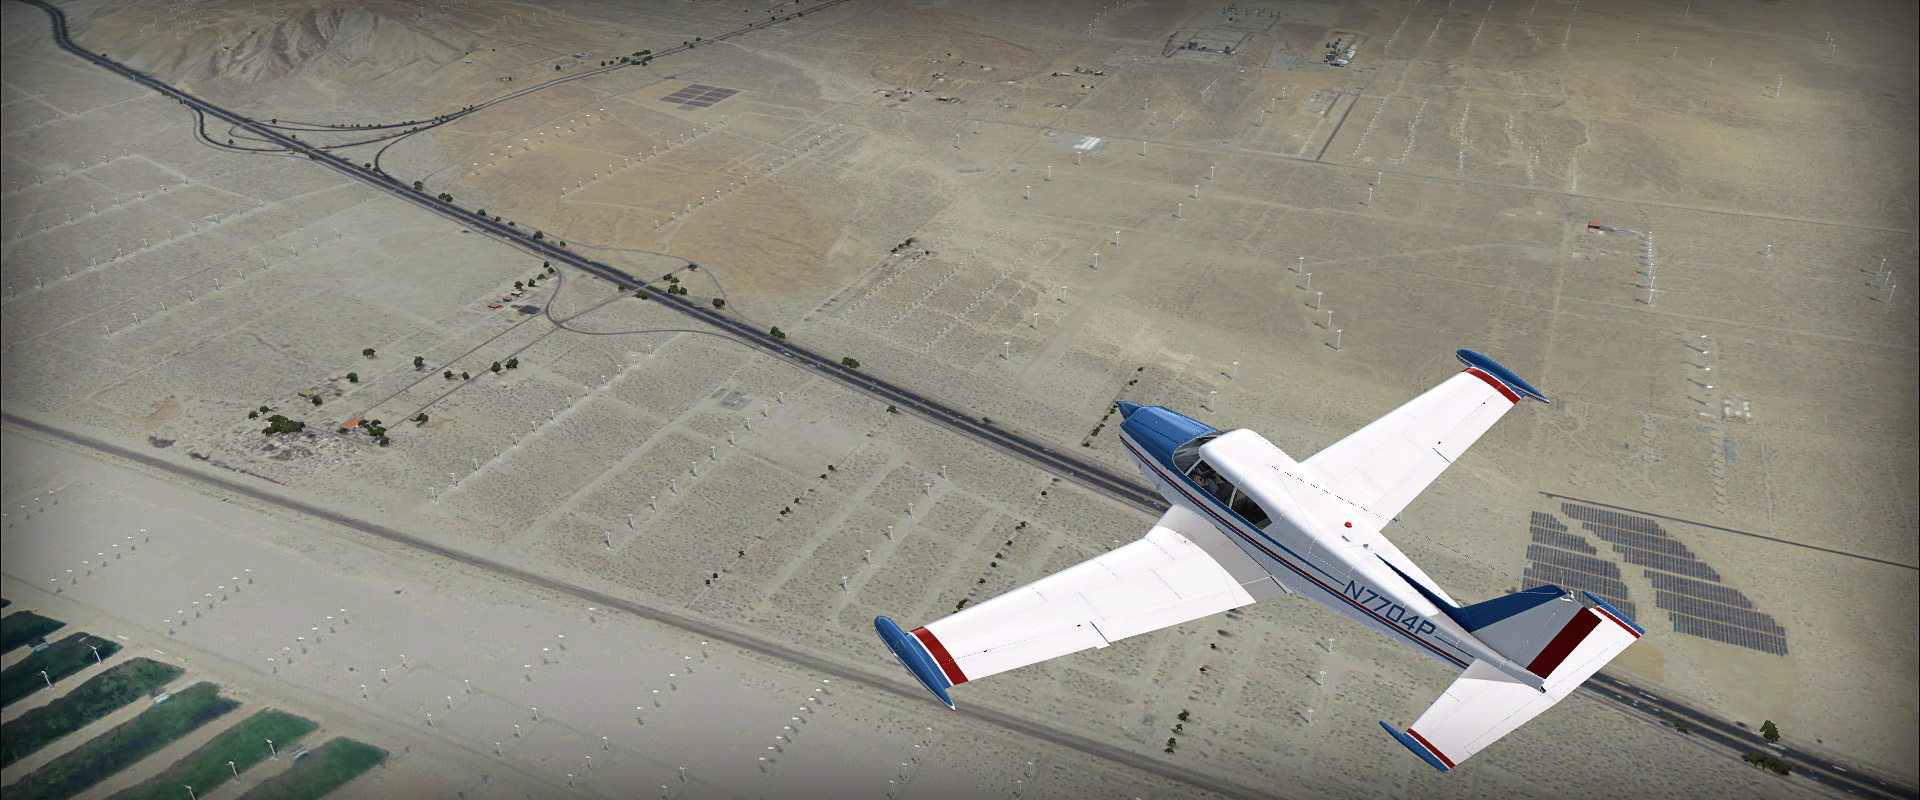 Best Fsx Ware Airport Scenery - xilusthai